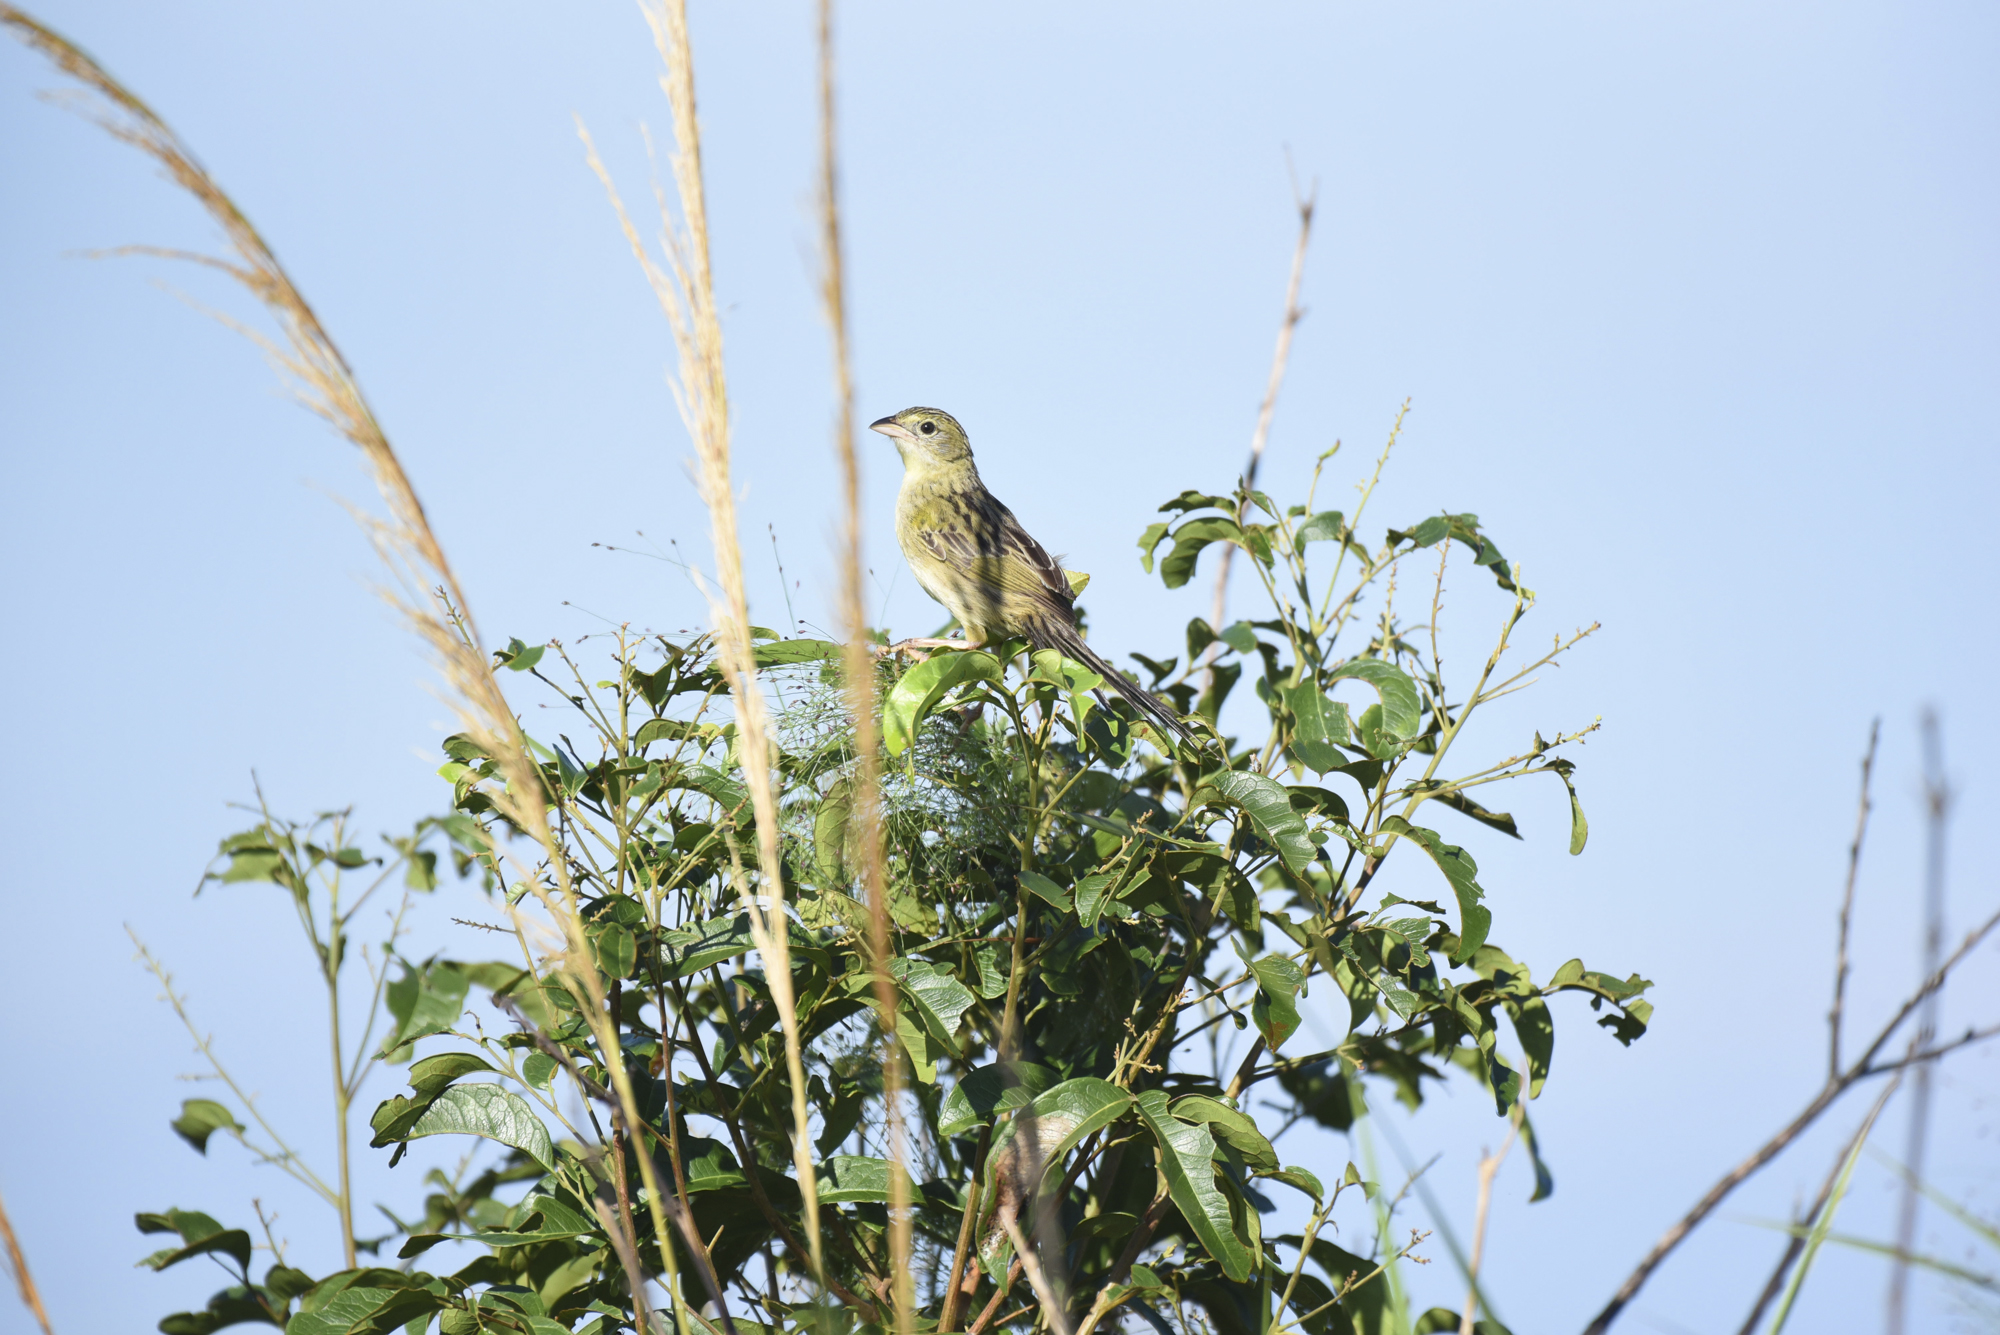 A Wedge-tailed grass-finch ( Emberizoides herbicola ) perches near its flock on the Pampas de Heath. This species is endemic to the region and three other small grasslands habitats throughout Peru.